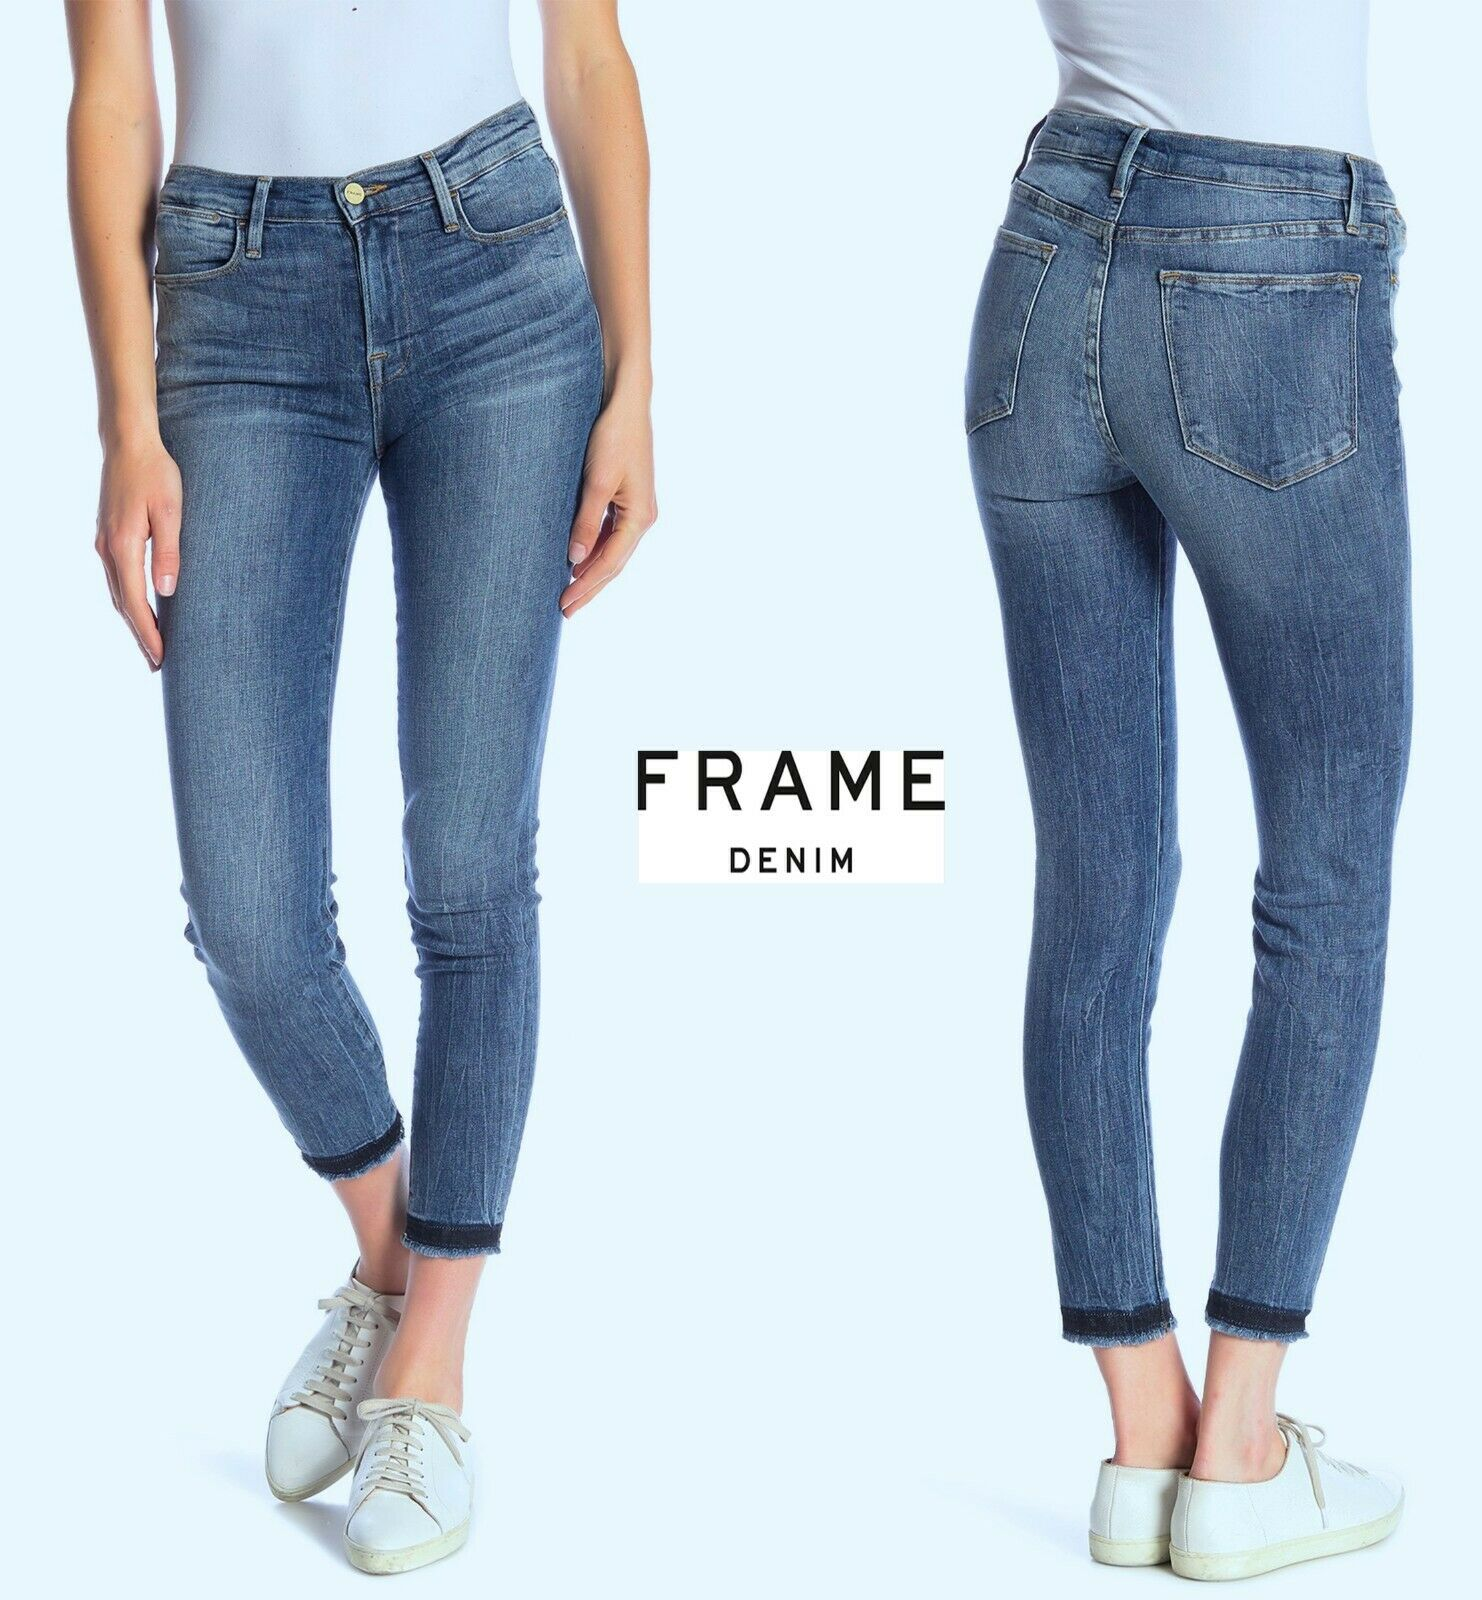 NWT  235 FRAME DENIM LE HIGH SKINNY FRYED HEM LANGSTONE JEANS. SZ 26,27